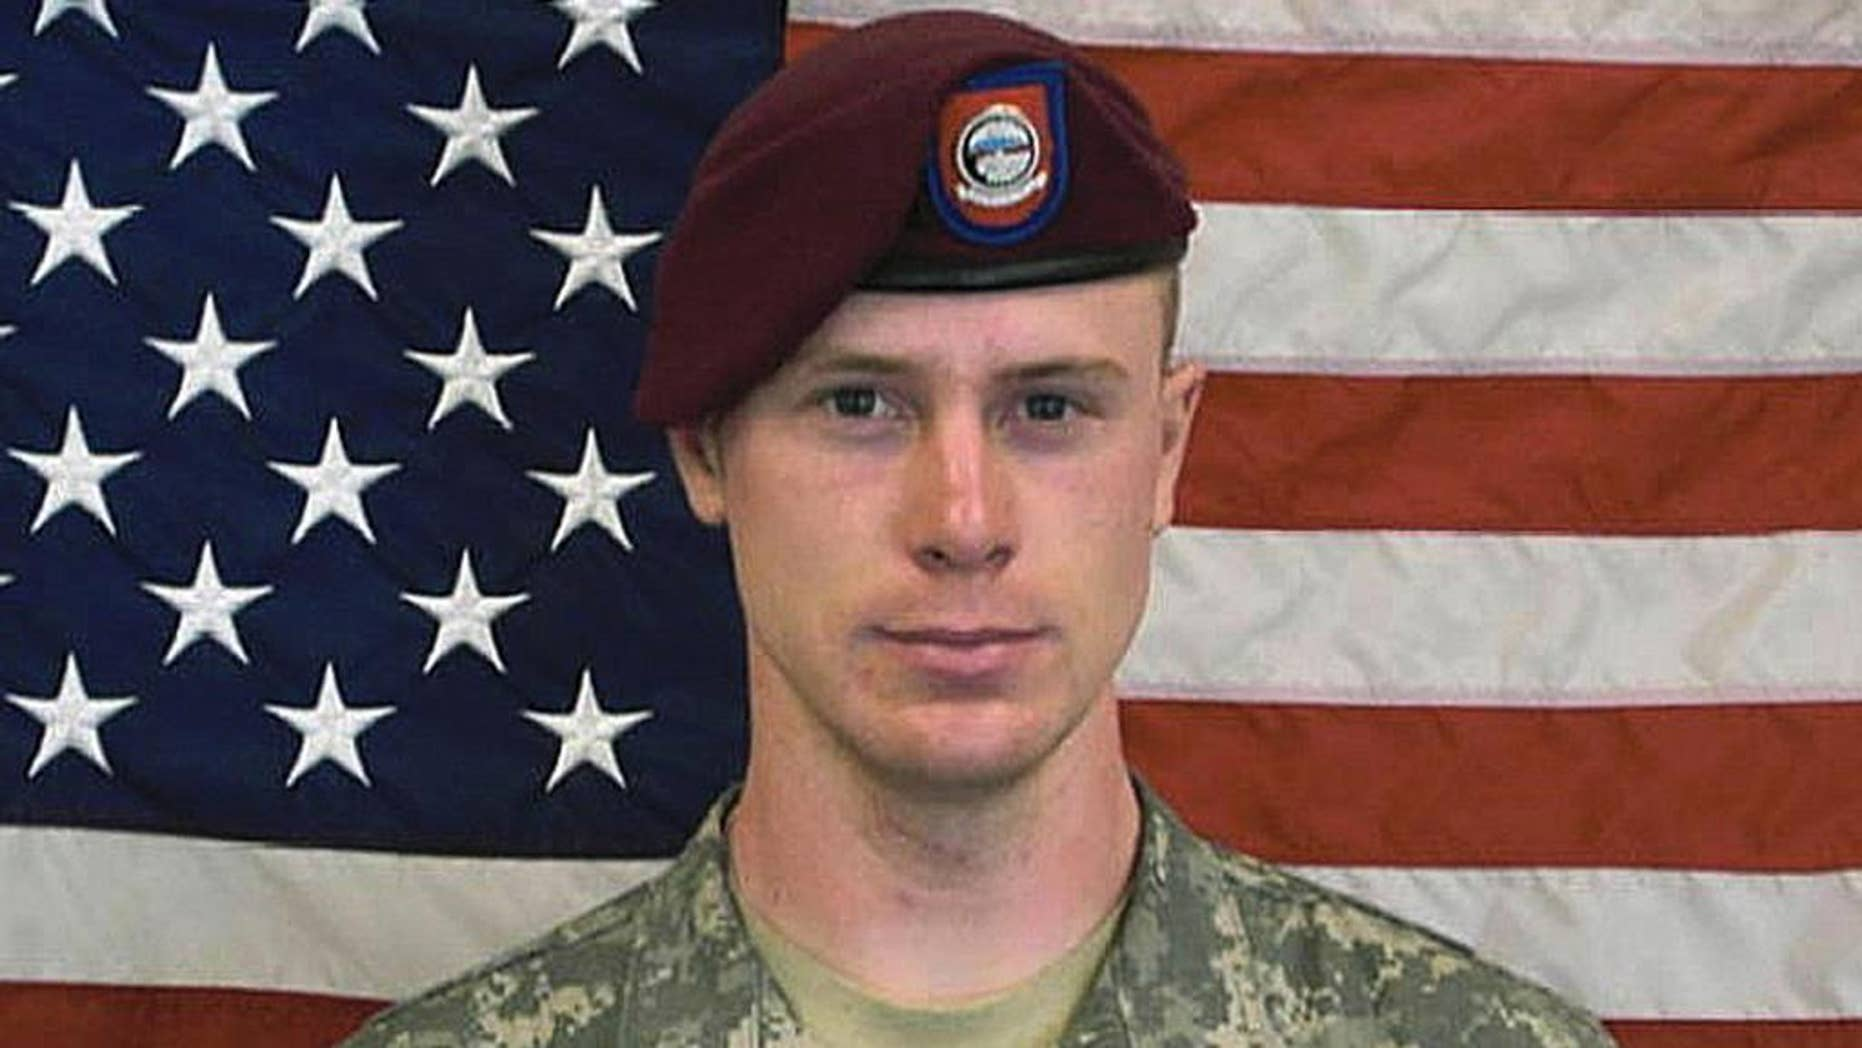 This undated image provided by the U.S. Army shows Sgt. Bowe Bergdahl.  The case of Bergdahl, held by the Taliban since 2009, has arisen again as the U.S. and other countries engage in diplomatic efforts to end his capture. But if he is released, will America's only prisoner of the Afghan war be viewed as a hero or a deserter? (AP Photo/U.S. Army)